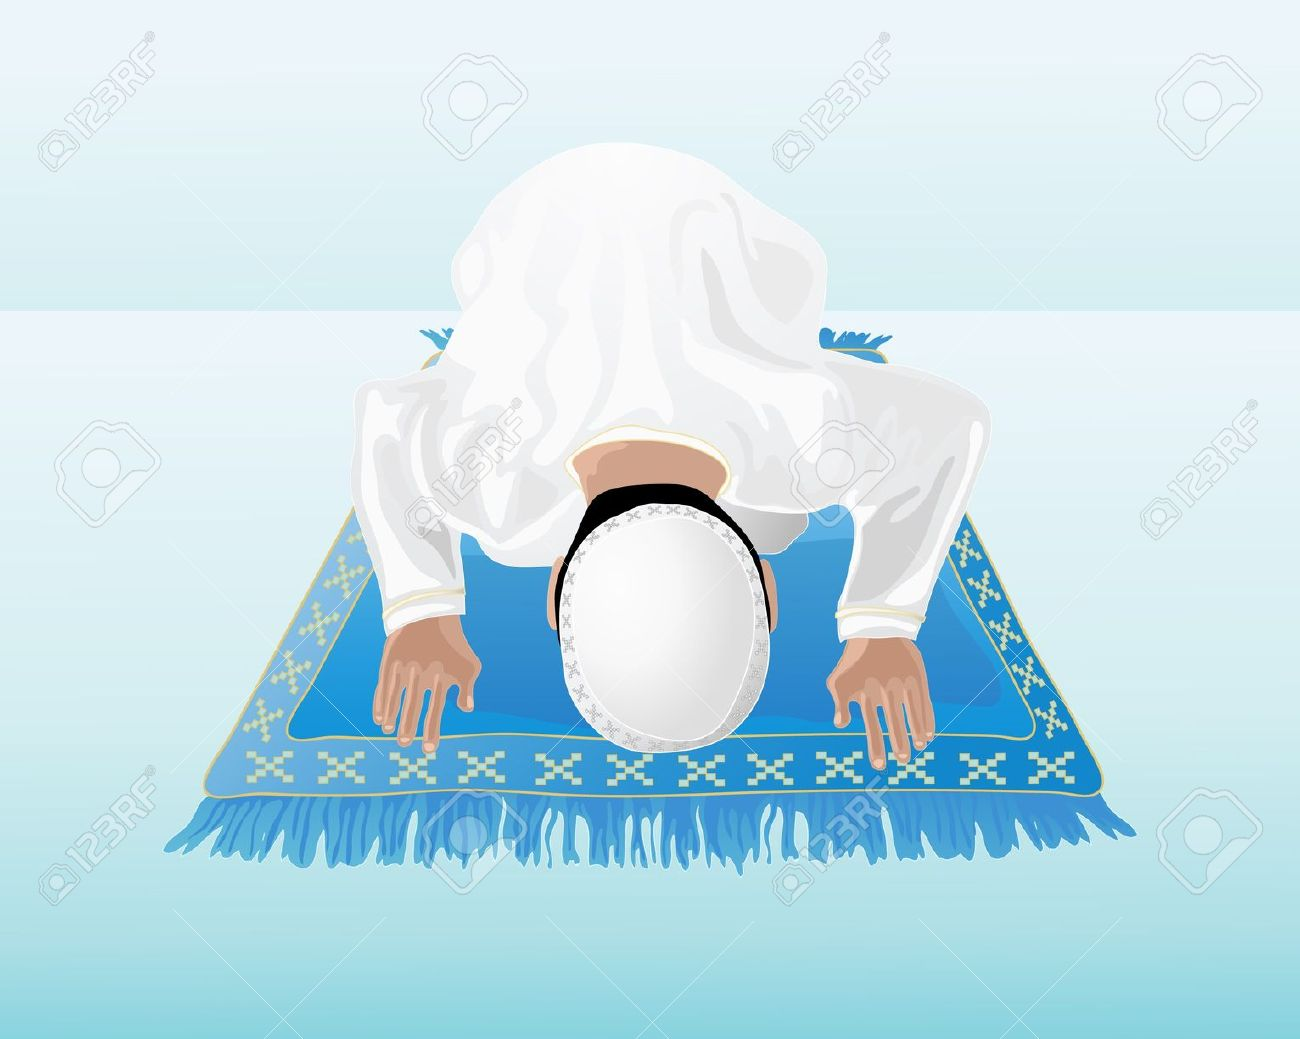 Muslim prayer clipart.